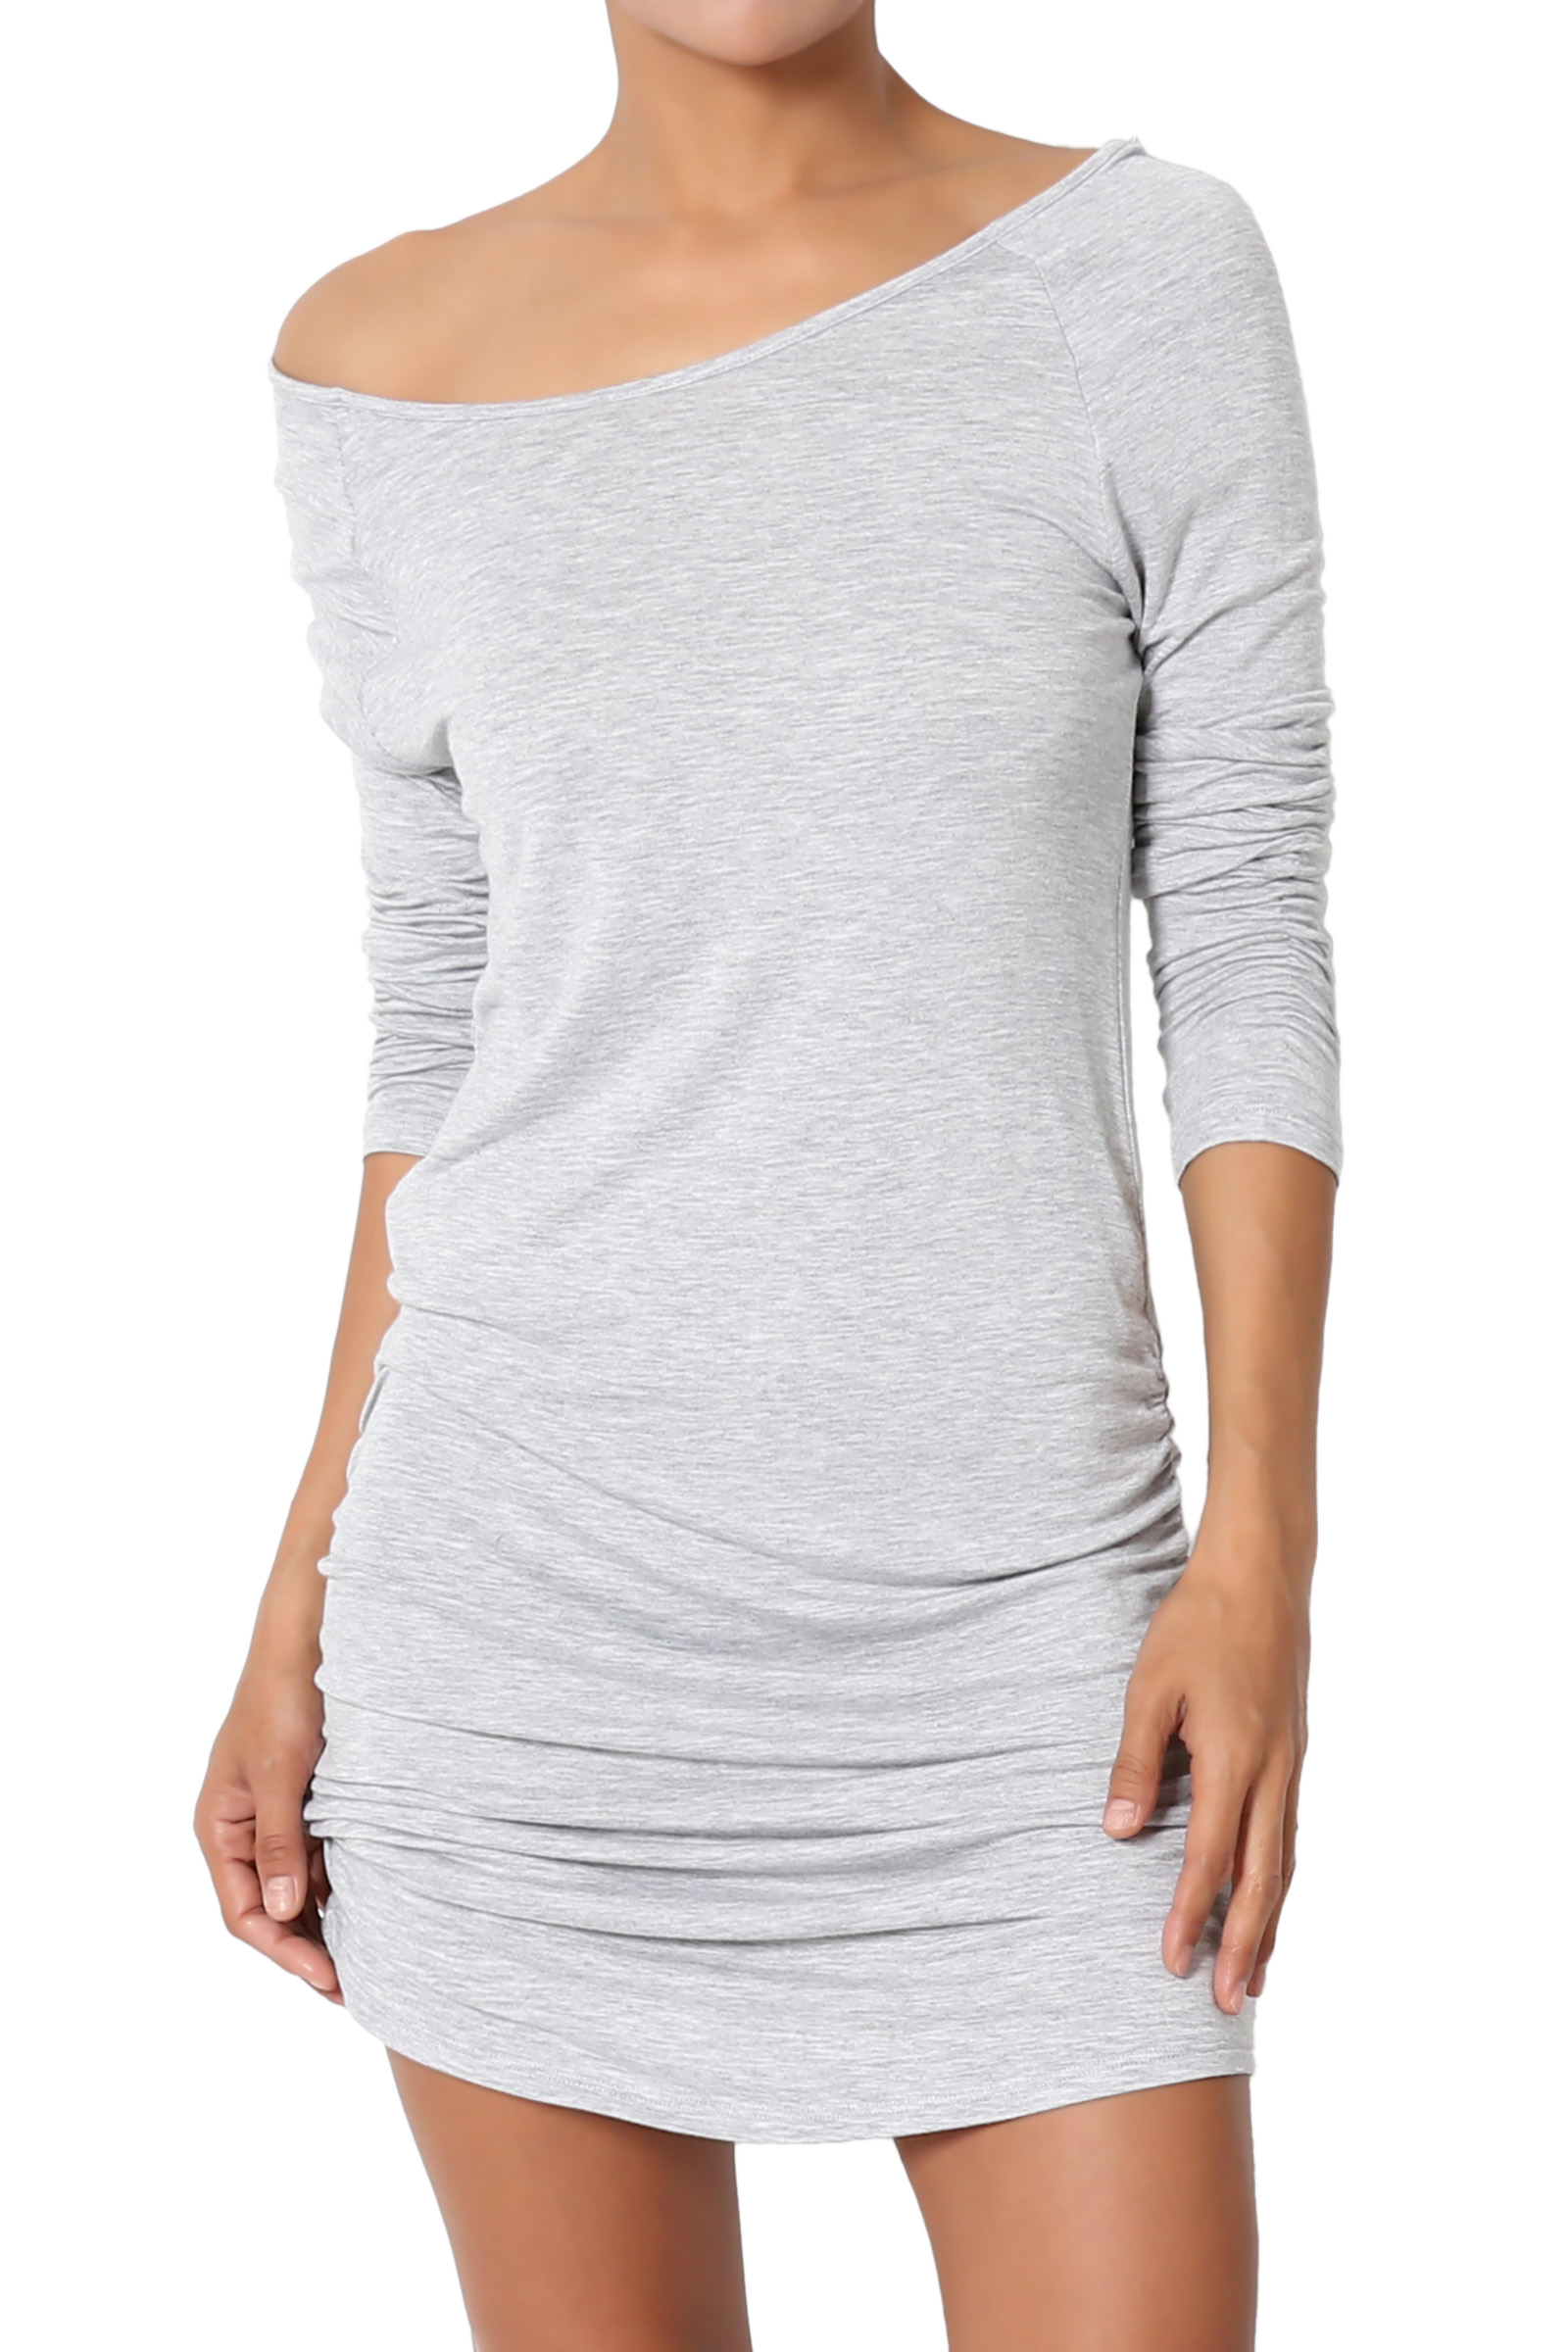 TheMogan Women's Boat Neck Long Sleeve Ruched Tunic Top Tee Dress Heather Grey L